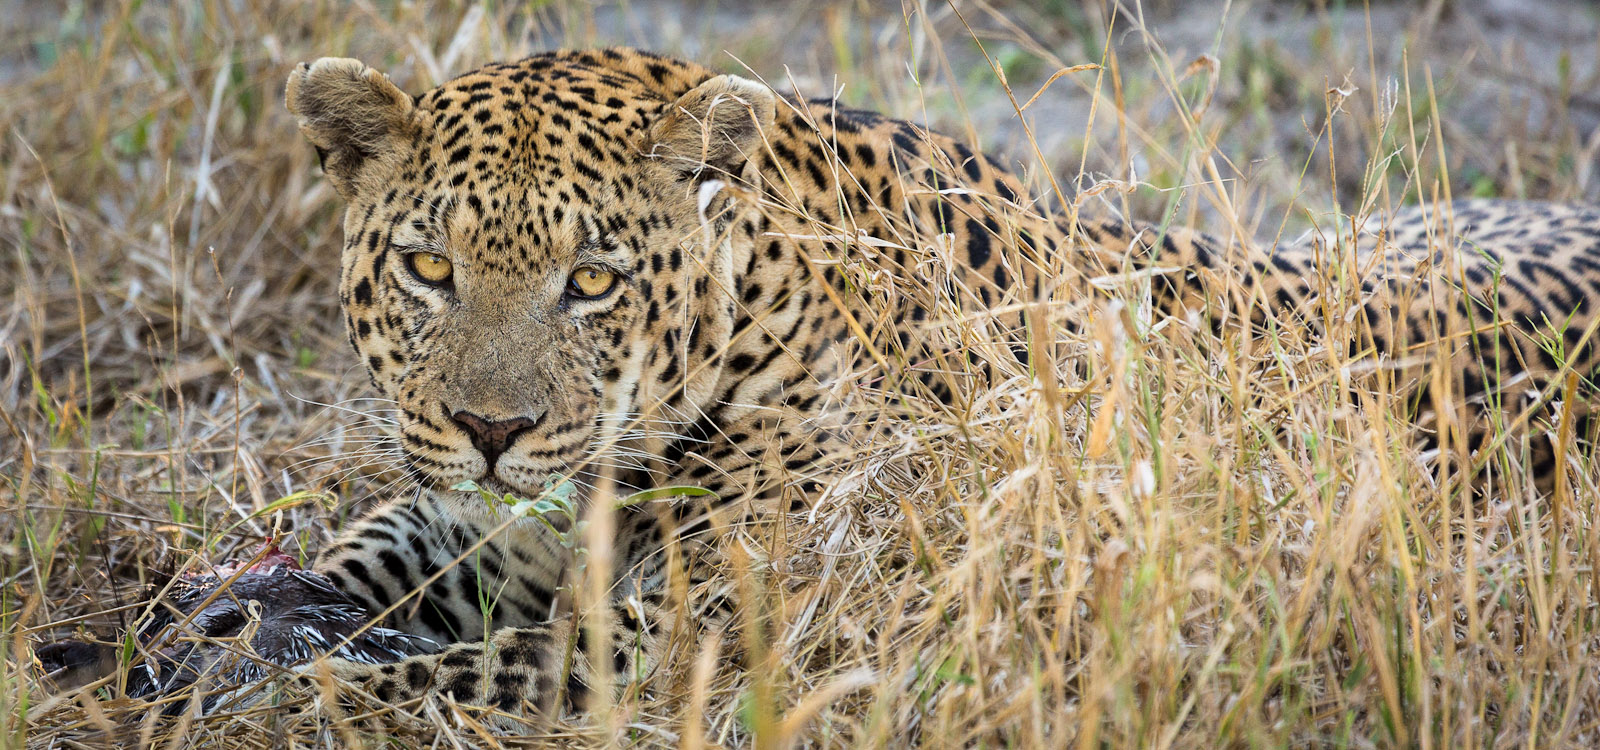 Phinley, our guide, was able to track a young leopard who was eating a young porcupine for dinner. The leopard had to keep working around and pulling out the quils to get to the {quote}good{quote} parts. This was on game drive at Chitabe Lediba Camp in the Okavango Delta, Botswana.